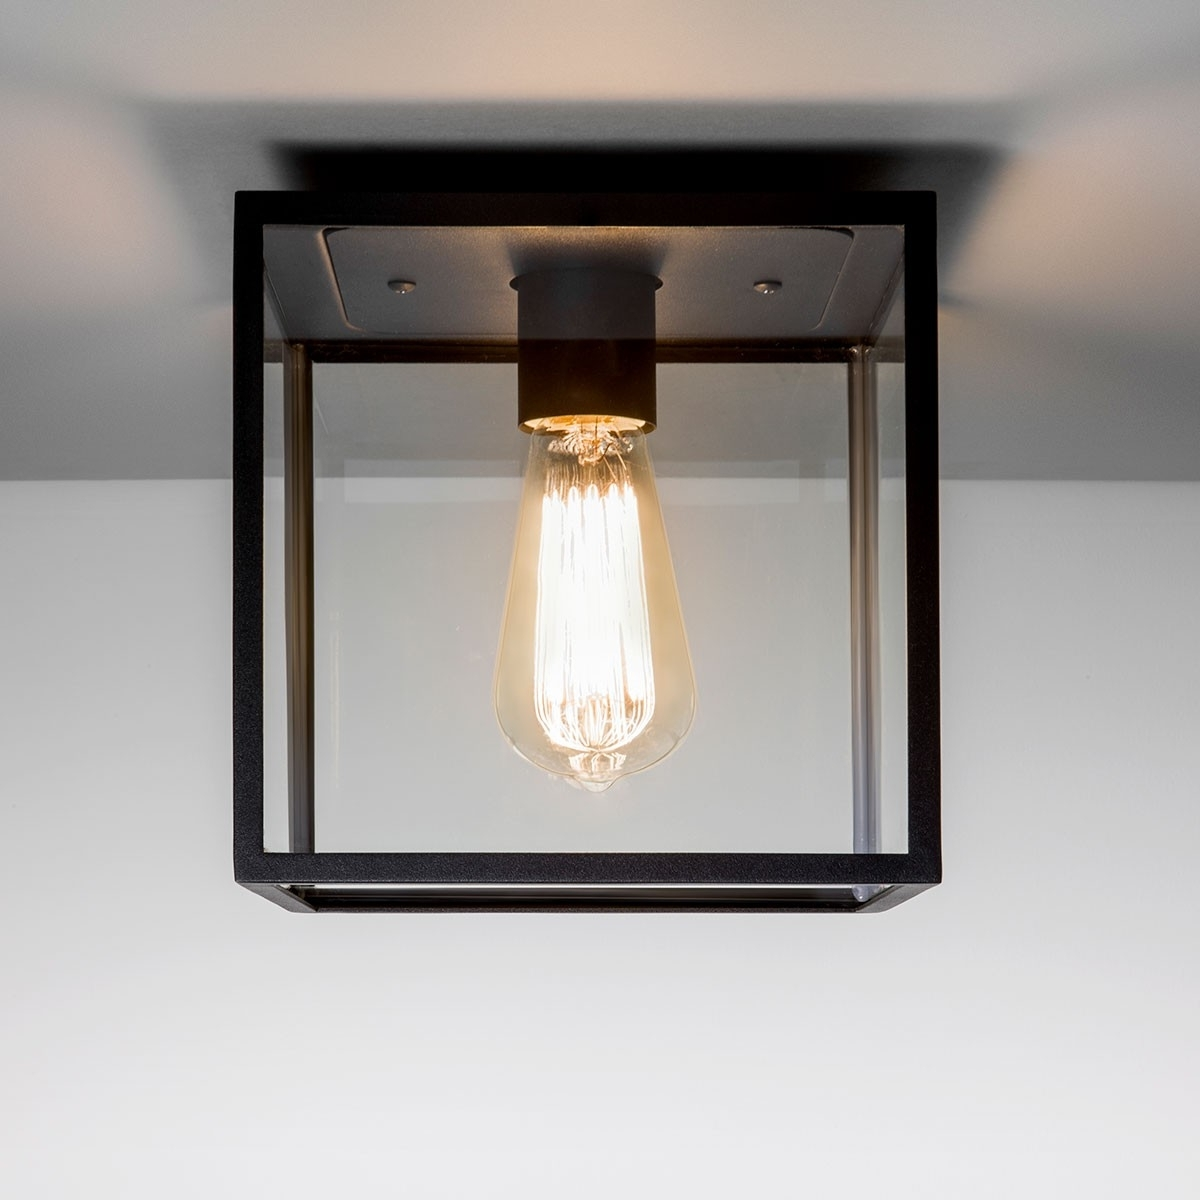 Preferred Black Outdoor Ceiling Lights Pertaining To Astro Box Black Outdoor Ceiling Light At Uk Electrical Supplies (View 16 of 20)